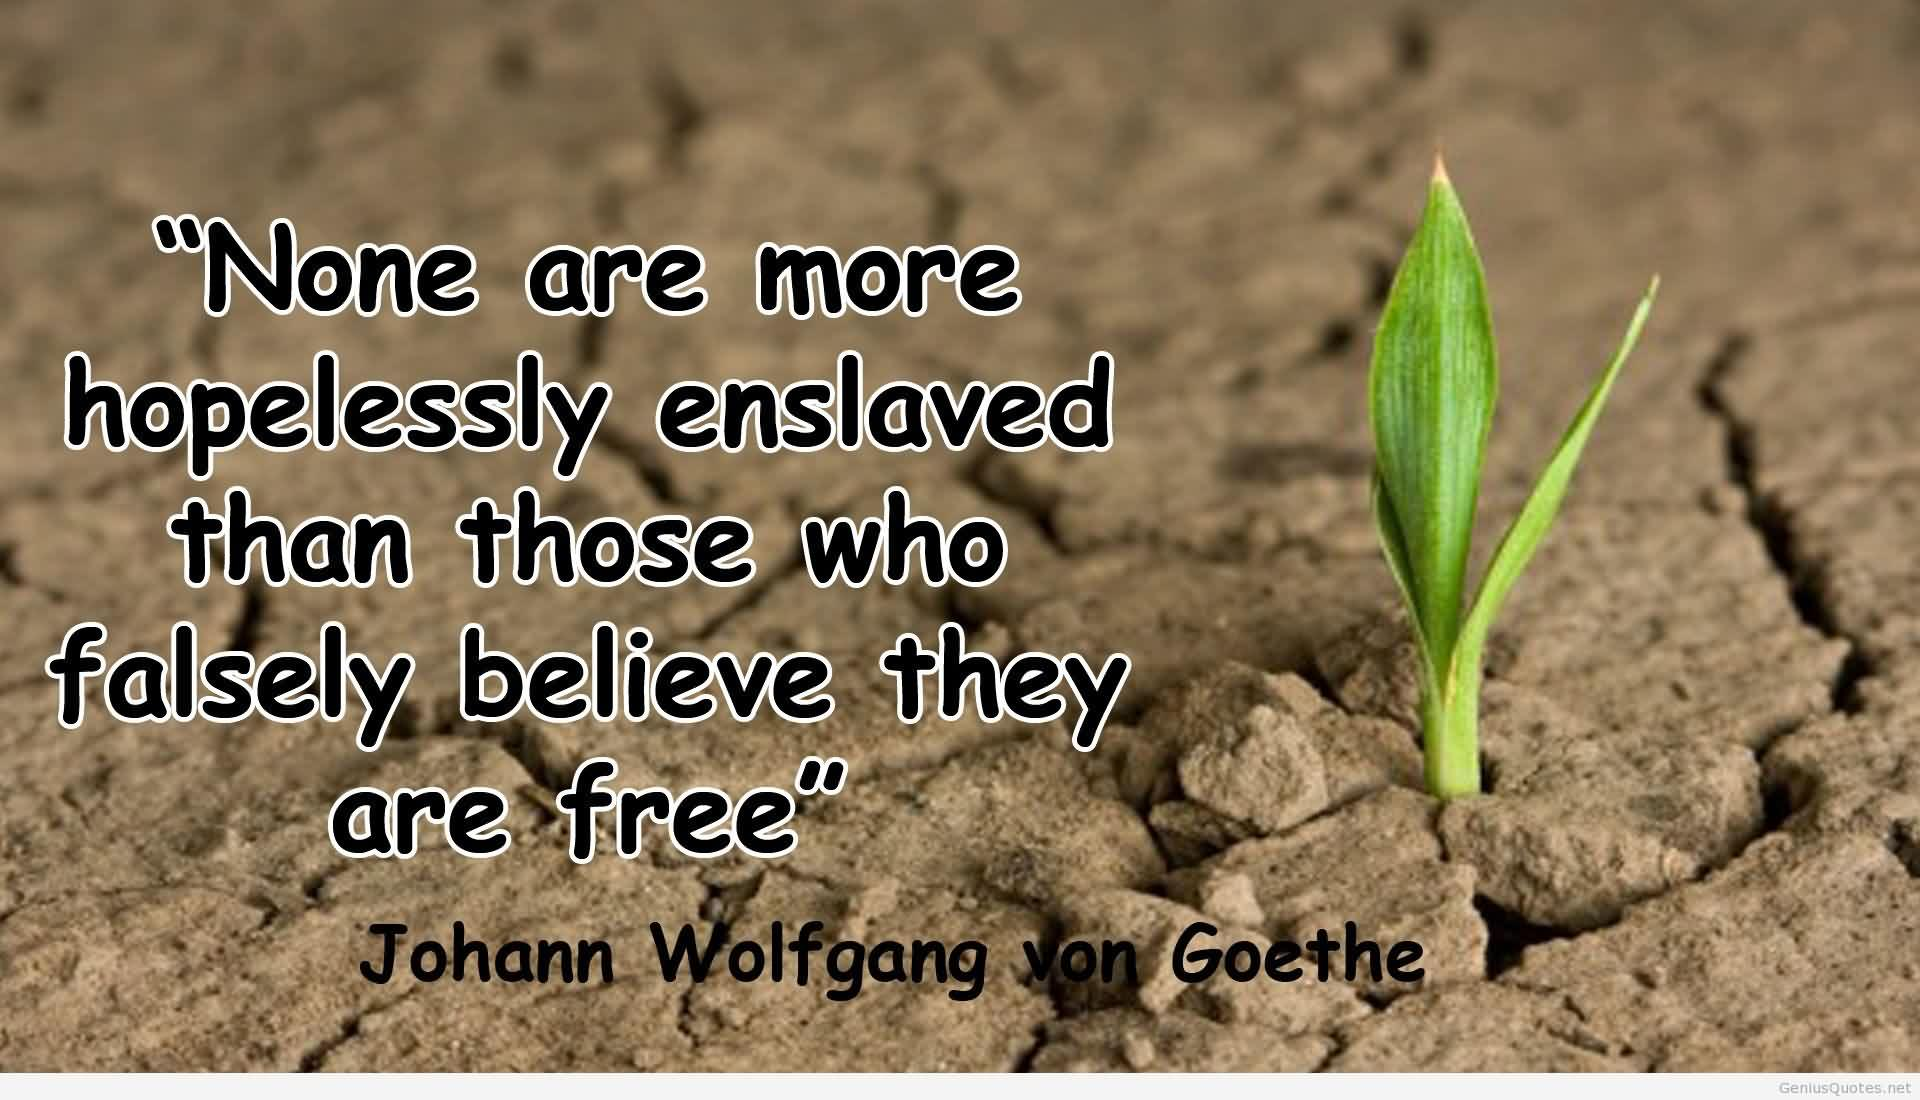 Incredible Johann Wolfgang Von Goethe Quotes